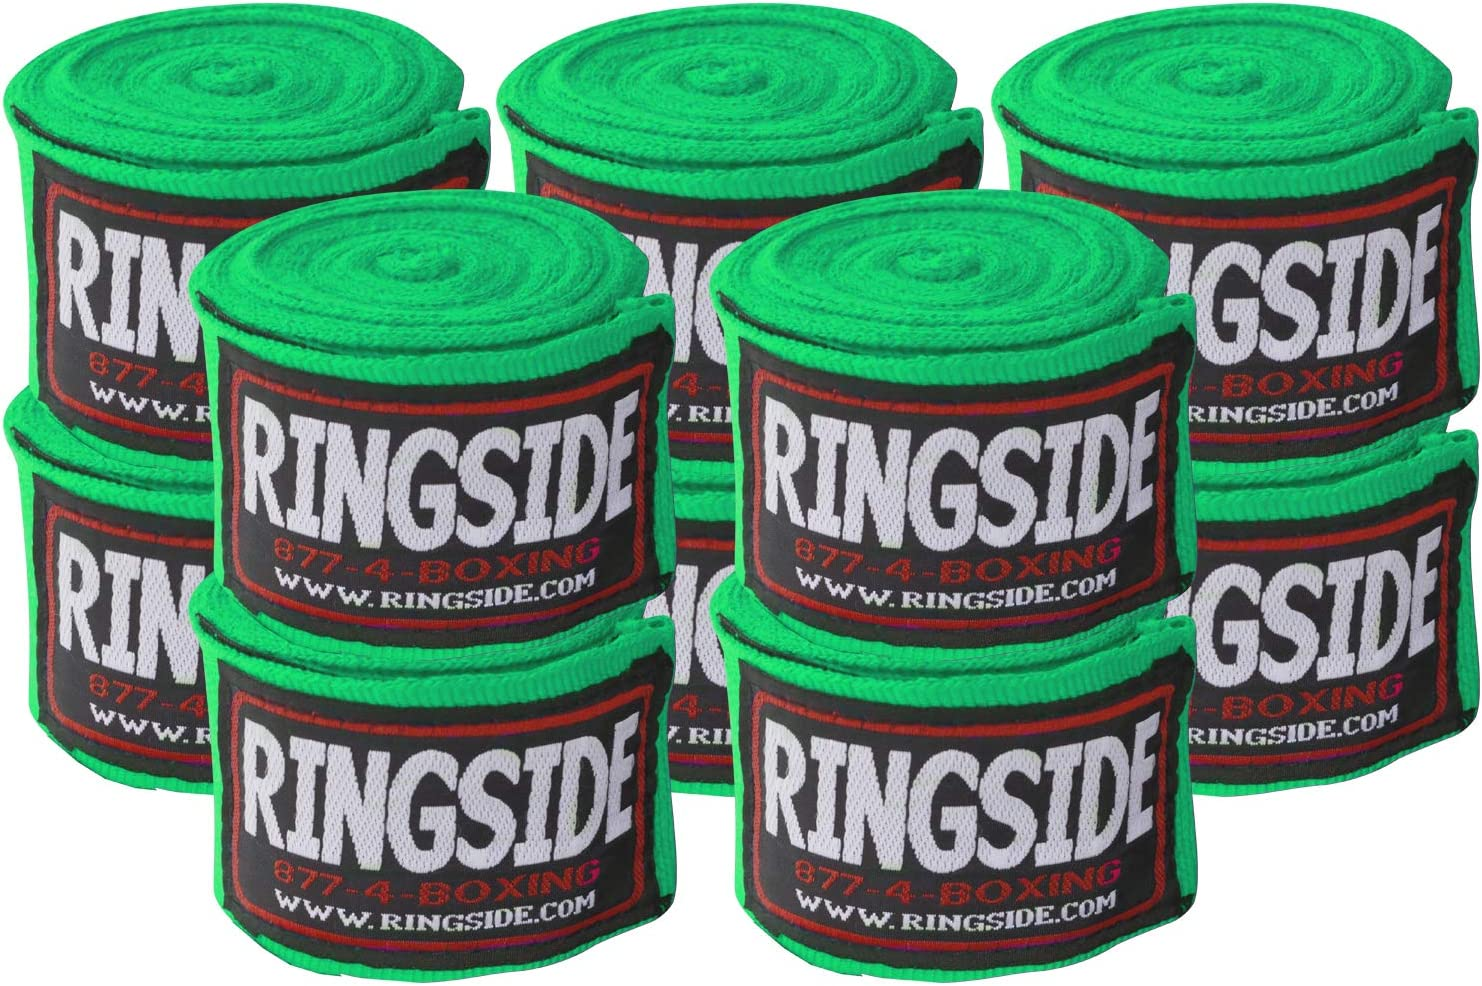 Ringside Mexican Style Boxing Hand Wraps 5 Pairs Pack